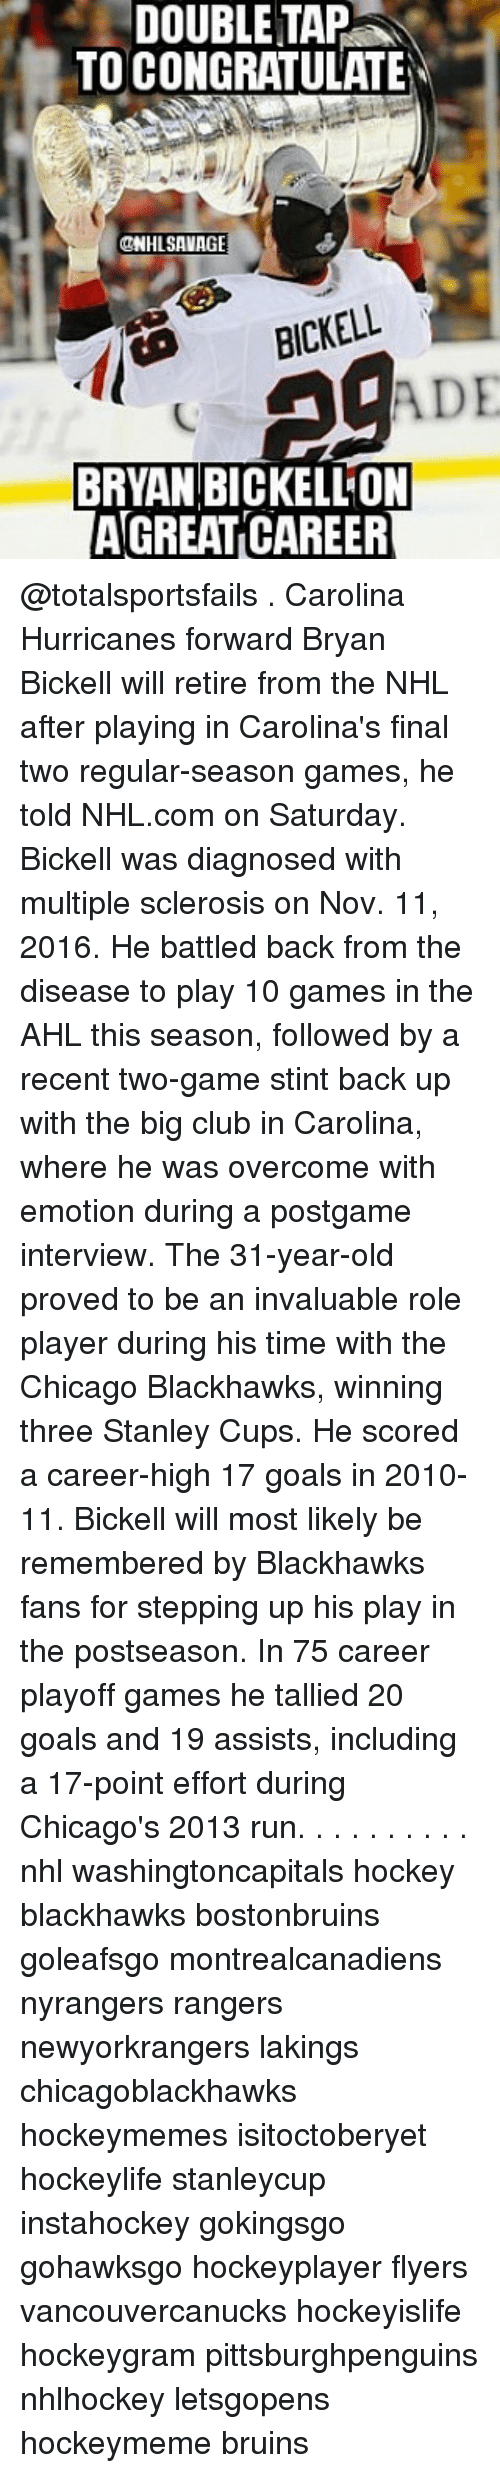 multiple sclerosis: DOUBLE TAP  TO CONGRATULATE  @NHL SAVAGE  ADE  BRYAN BICKELLON  AGREAT CAREER @totalsportsfails . Carolina Hurricanes forward Bryan Bickell will retire from the NHL after playing in Carolina's final two regular-season games, he told NHL.com on Saturday. Bickell was diagnosed with multiple sclerosis on Nov. 11, 2016. He battled back from the disease to play 10 games in the AHL this season, followed by a recent two-game stint back up with the big club in Carolina, where he was overcome with emotion during a postgame interview. The 31-year-old proved to be an invaluable role player during his time with the Chicago Blackhawks, winning three Stanley Cups. He scored a career-high 17 goals in 2010-11. Bickell will most likely be remembered by Blackhawks fans for stepping up his play in the postseason. In 75 career playoff games he tallied 20 goals and 19 assists, including a 17-point effort during Chicago's 2013 run. . . . . . . . . . nhl washingtoncapitals hockey blackhawks bostonbruins goleafsgo montrealcanadiens nyrangers rangers newyorkrangers lakings chicagoblackhawks hockeymemes isitoctoberyet hockeylife stanleycup instahockey gokingsgo gohawksgo hockeyplayer flyers vancouvercanucks hockeyislife hockeygram pittsburghpenguins nhlhockey letsgopens hockeymeme bruins